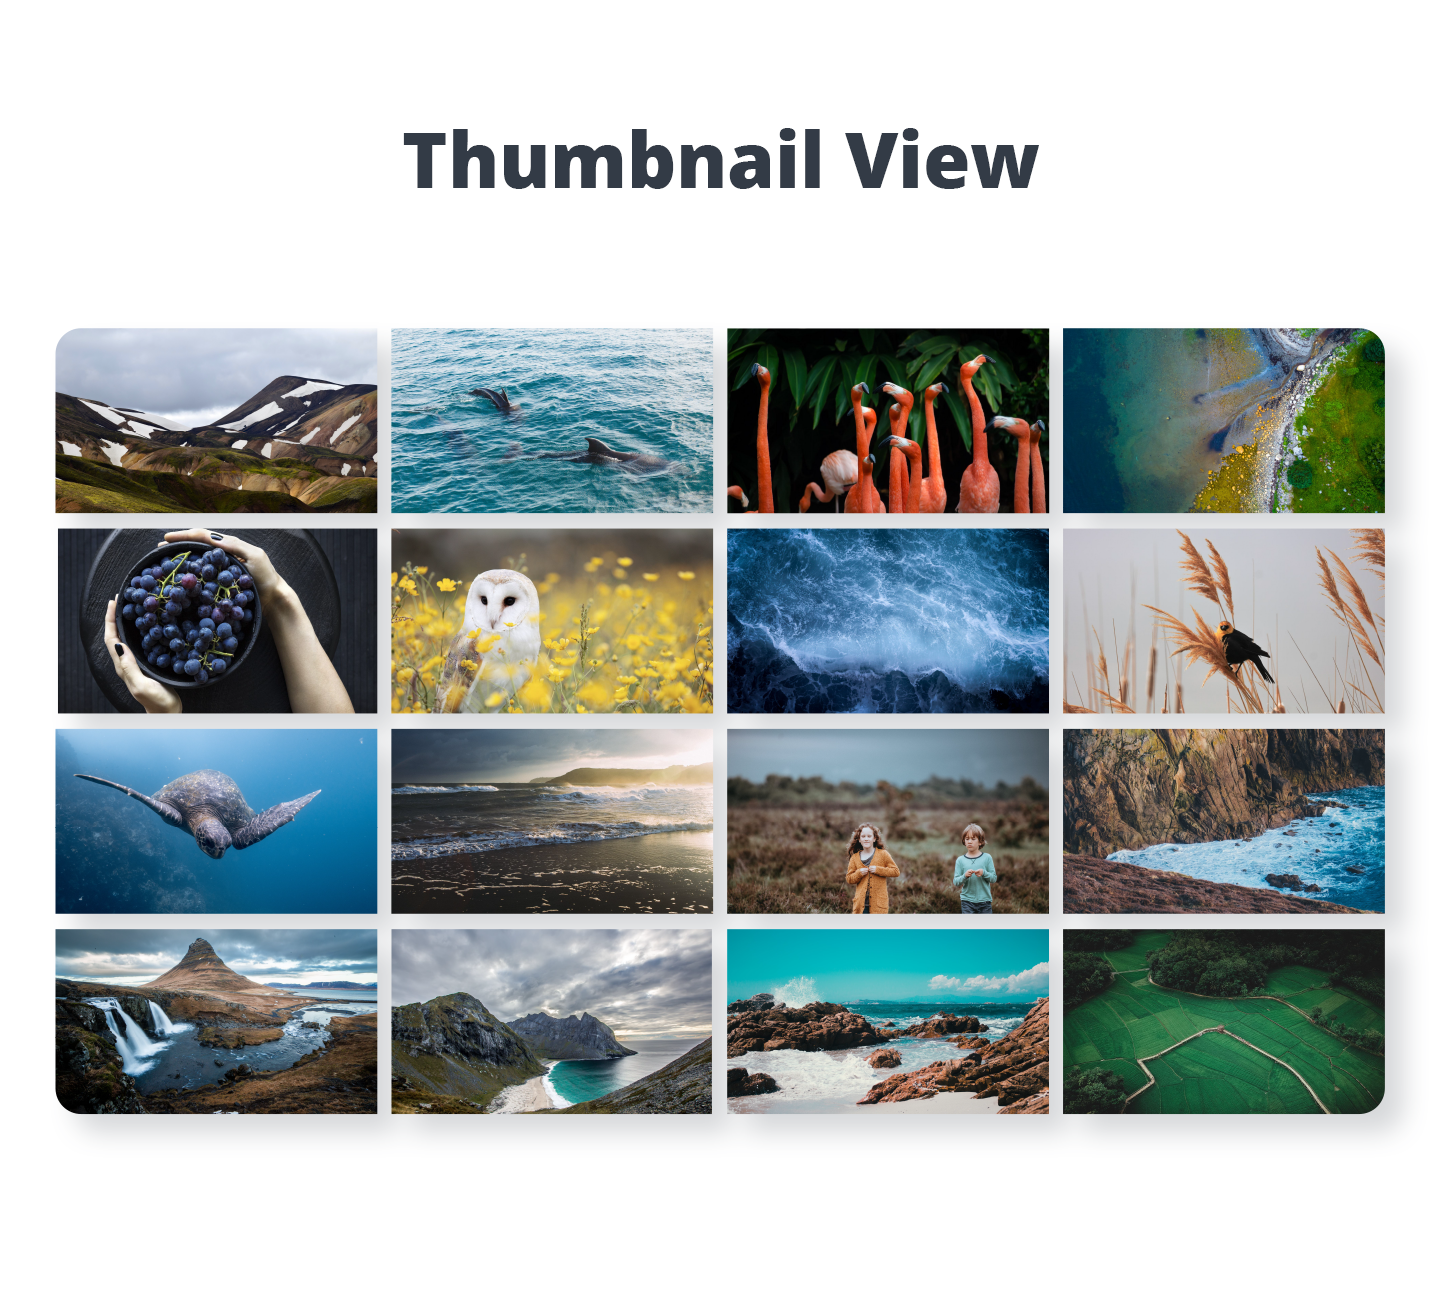 Photo Gallery - Thumbnails View